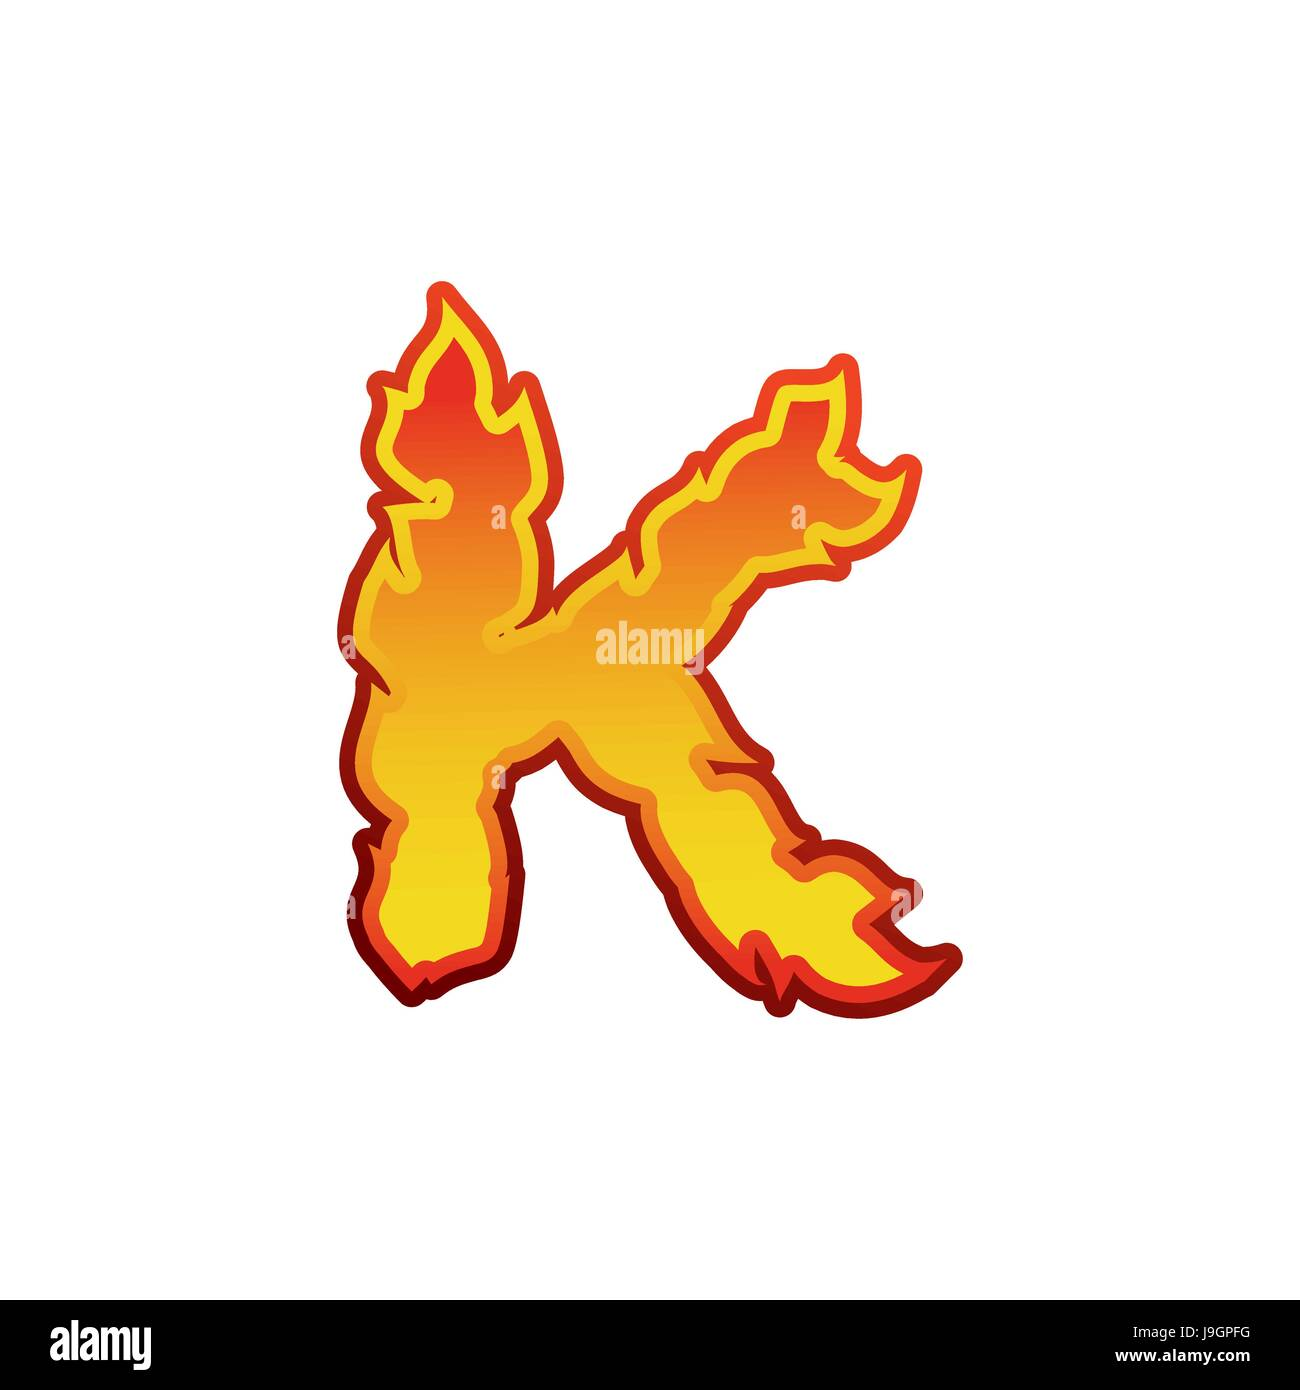 Letter K Fire Flames Font Lettering Tattoo Alphabet Character